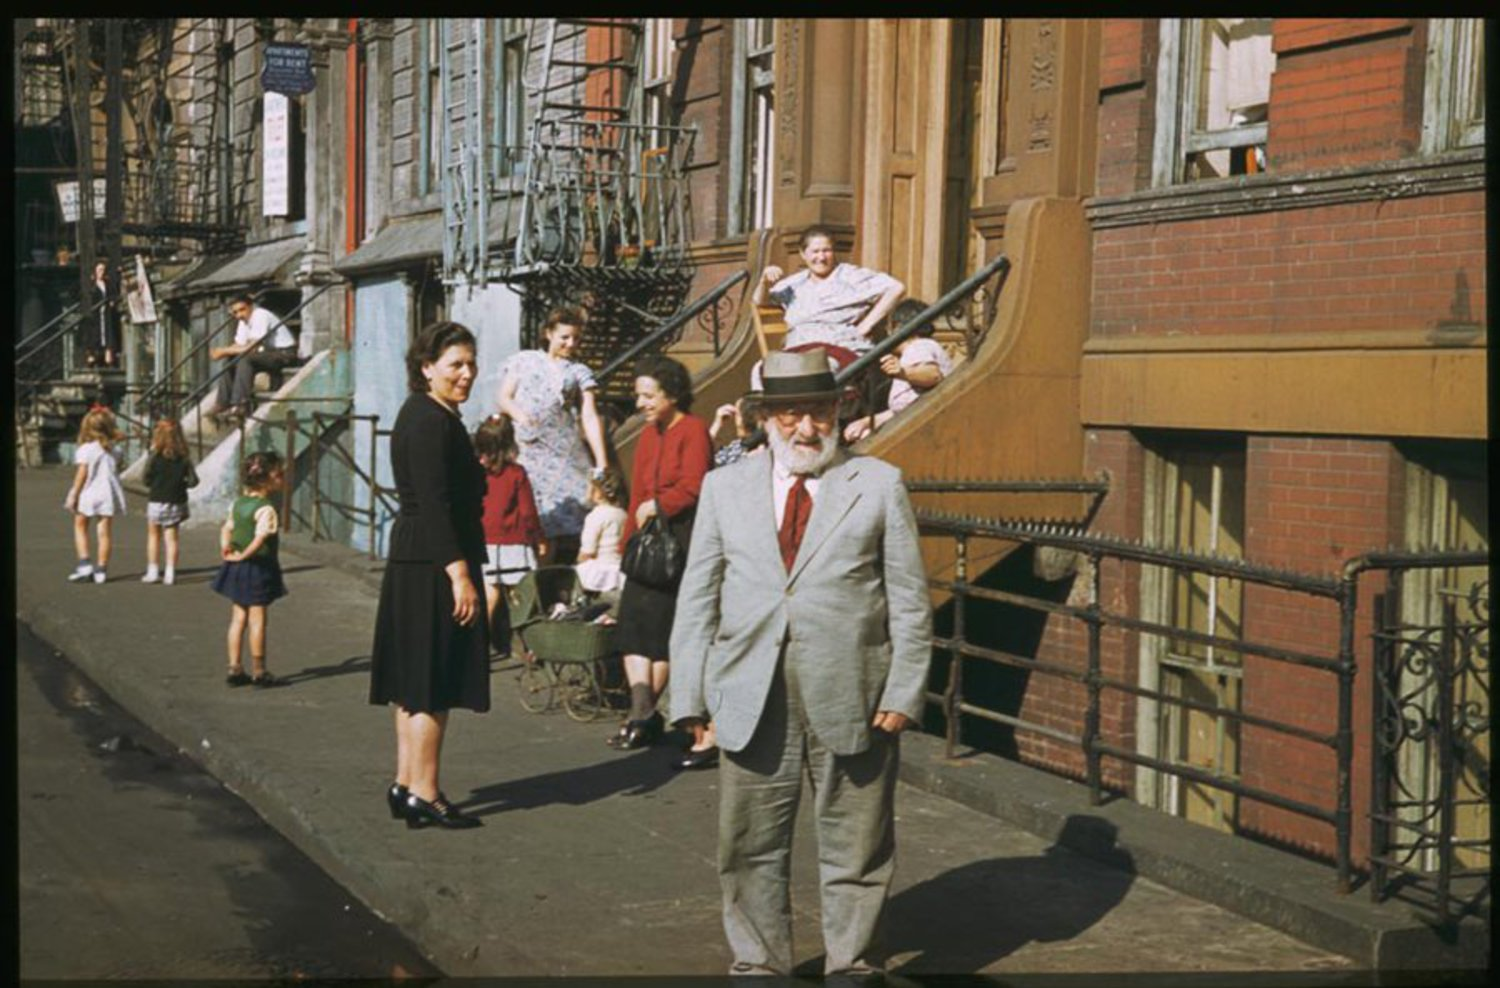 Residents socialize on Clinton Street on Manhattan's Lower East Side on a Saturday afternoon.